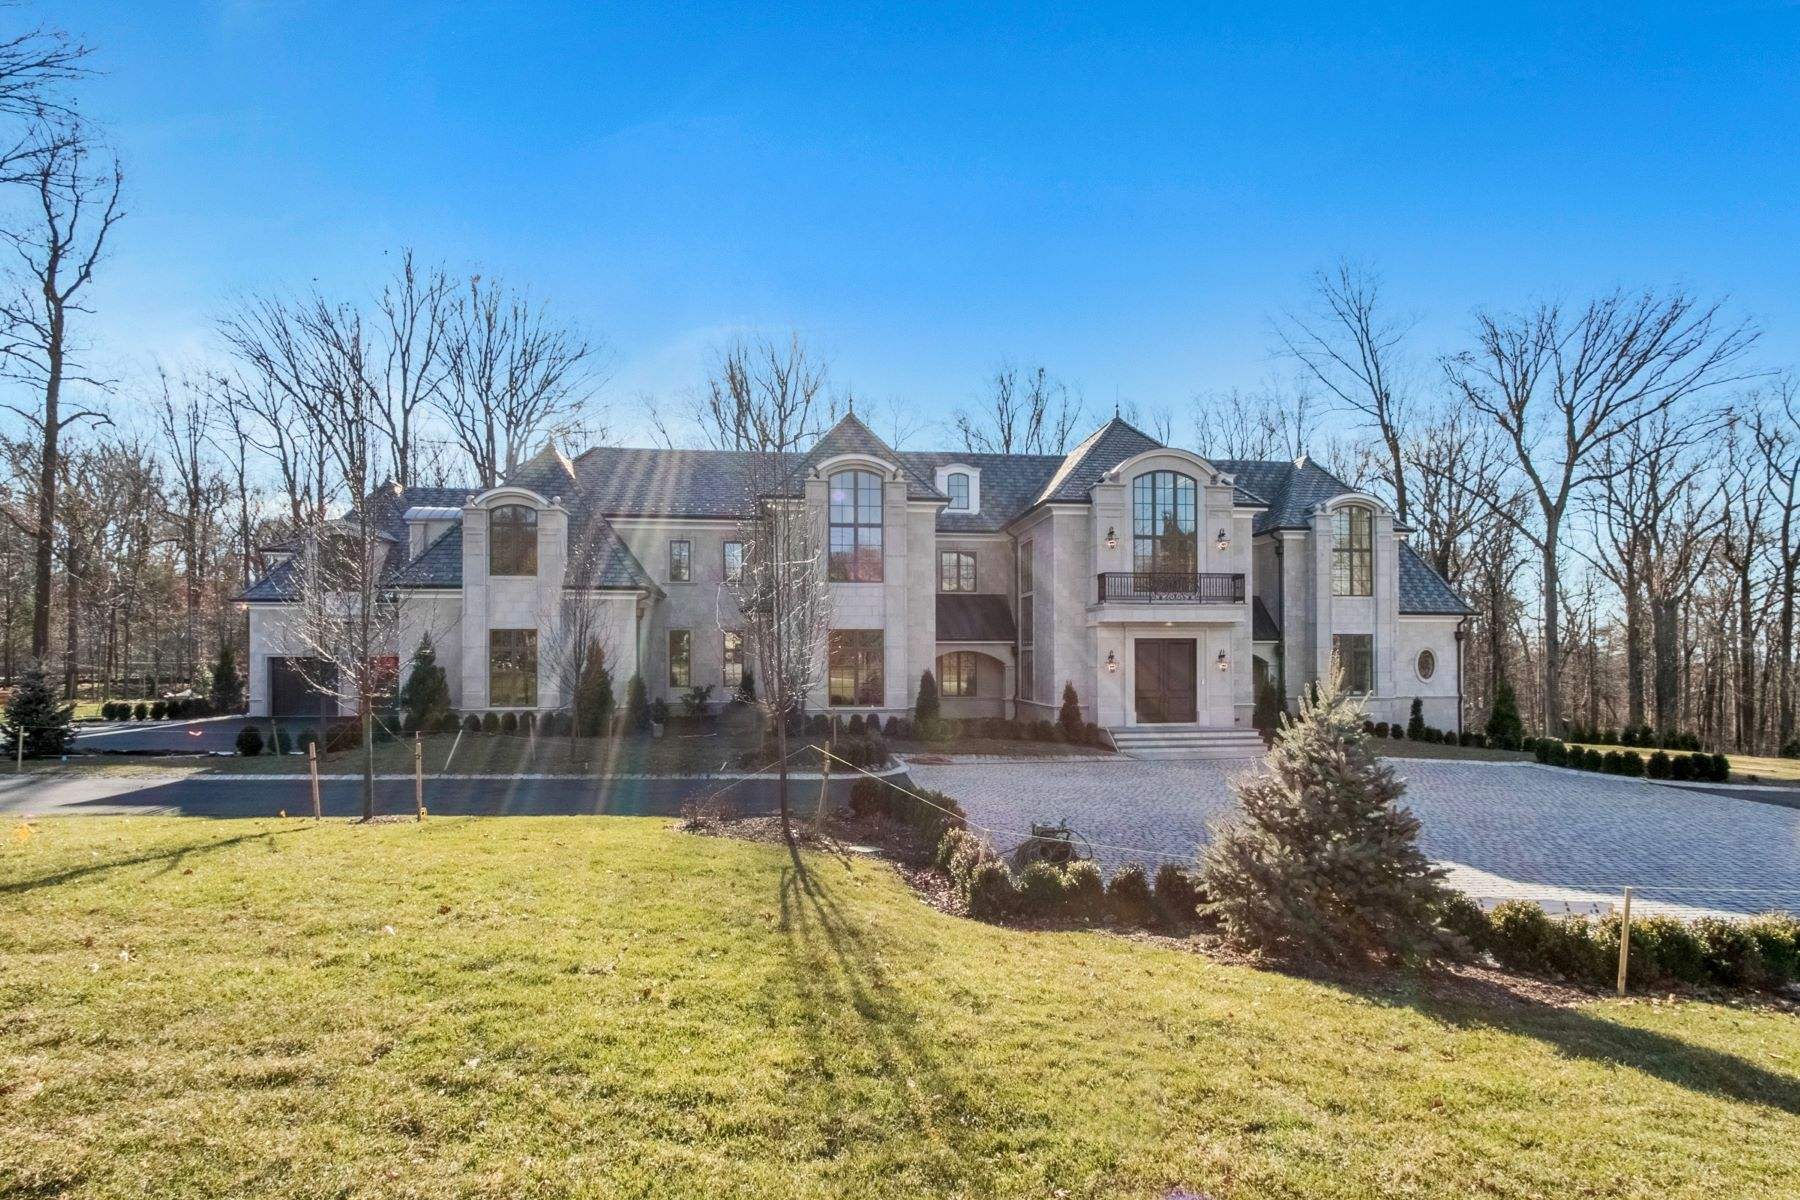 Single Family Home for Sale at Exquisite Custom Manor 24 Cambridge Way, Alpine, New Jersey 07620 United States